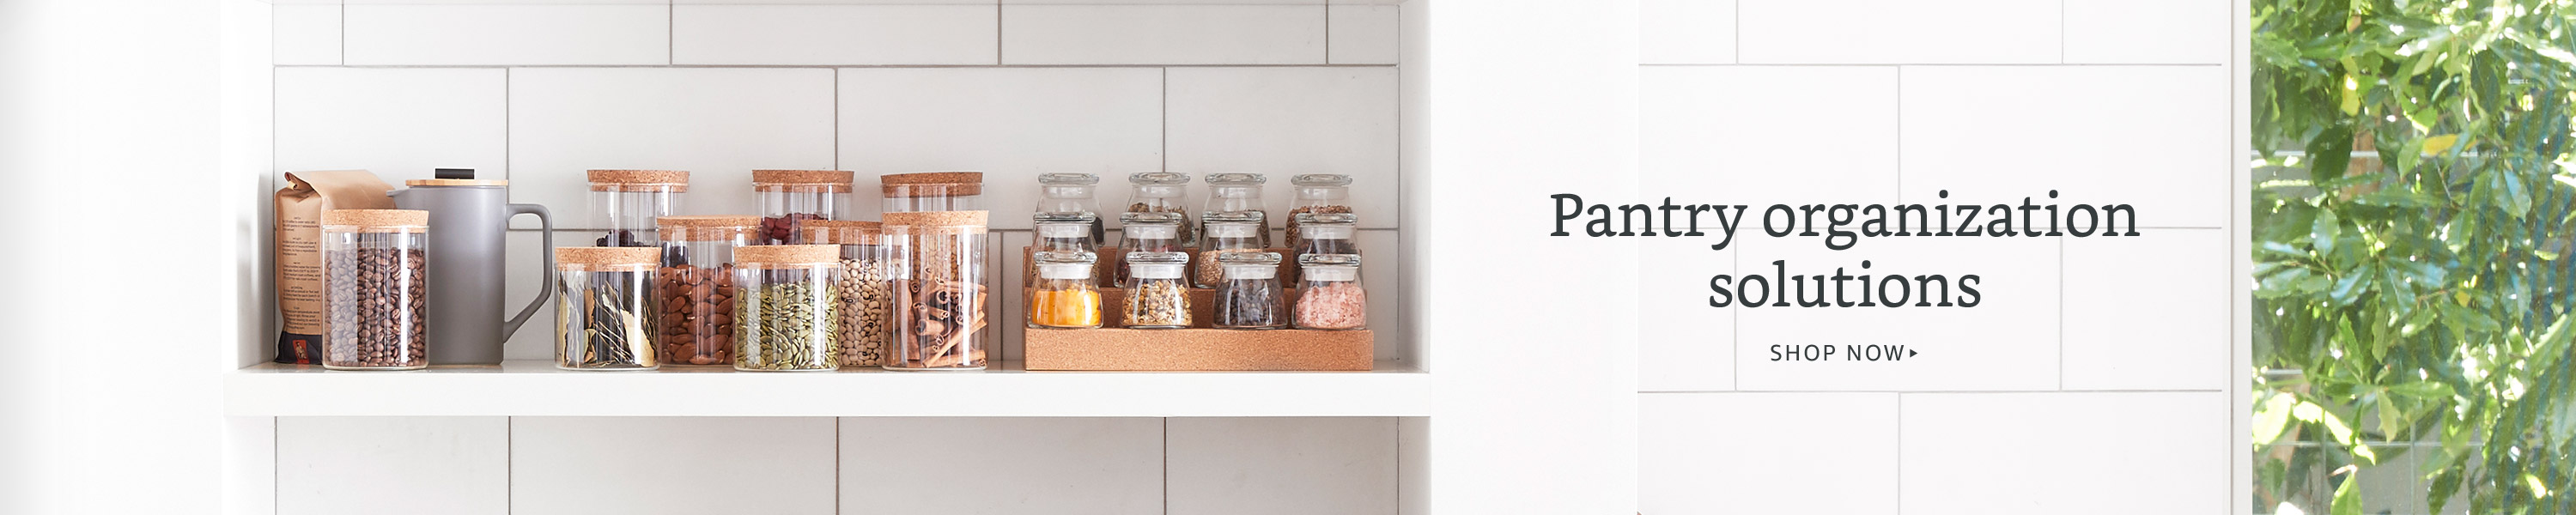 Pantry organization solutions